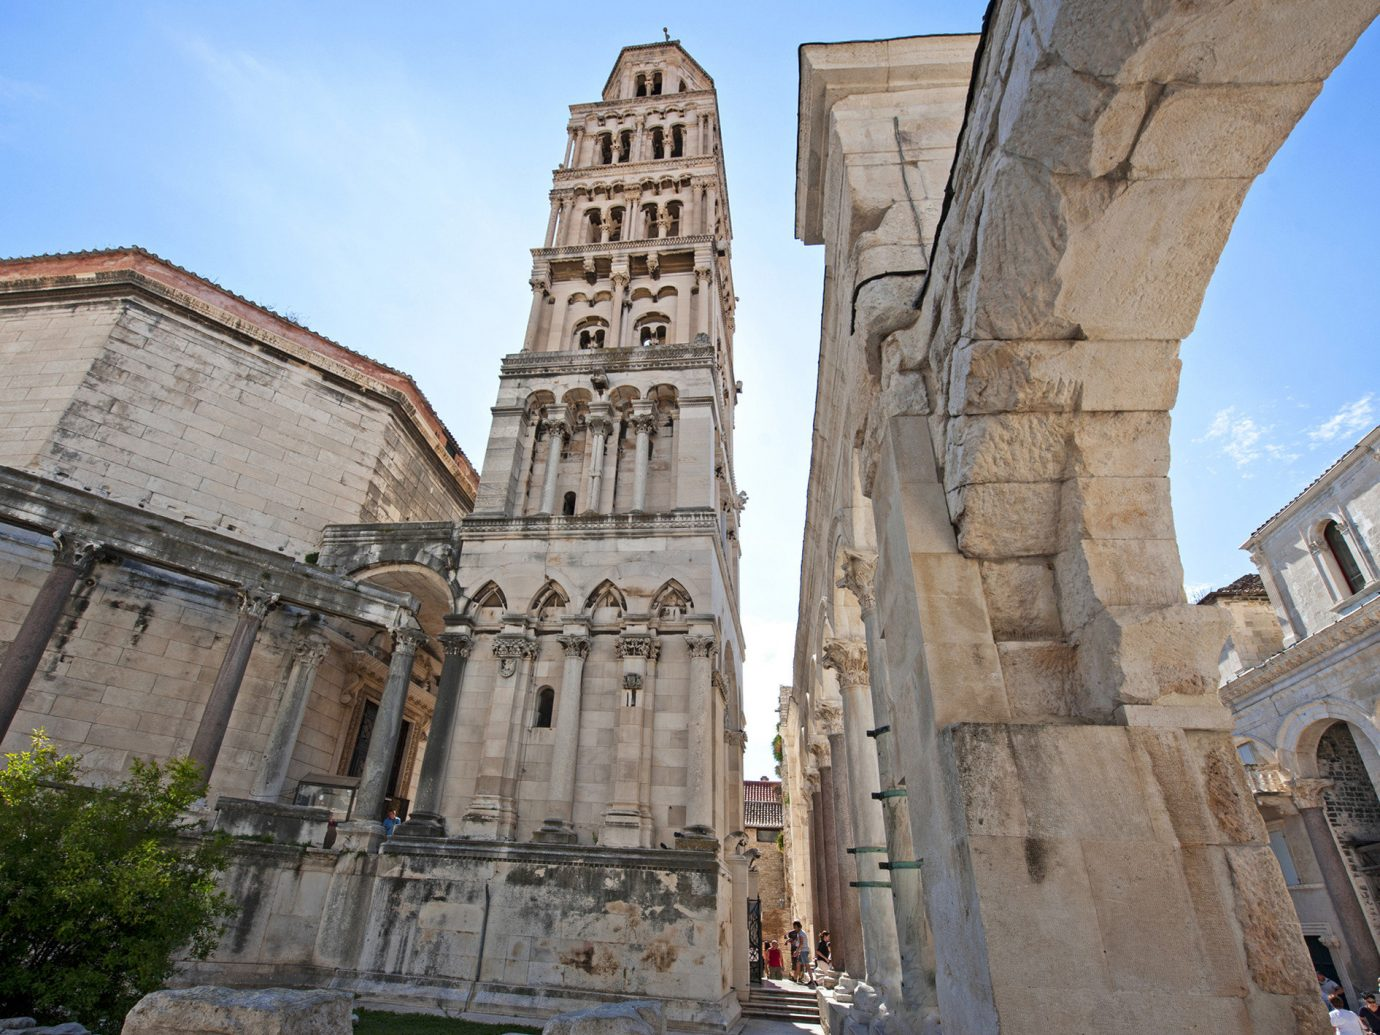 Travel Tips Trip Ideas building outdoor sky Church historic site landmark stone Architecture ancient history ancient roman architecture tourism cathedral old place of worship Ruins facade ancient rome arch monument basilica history tall